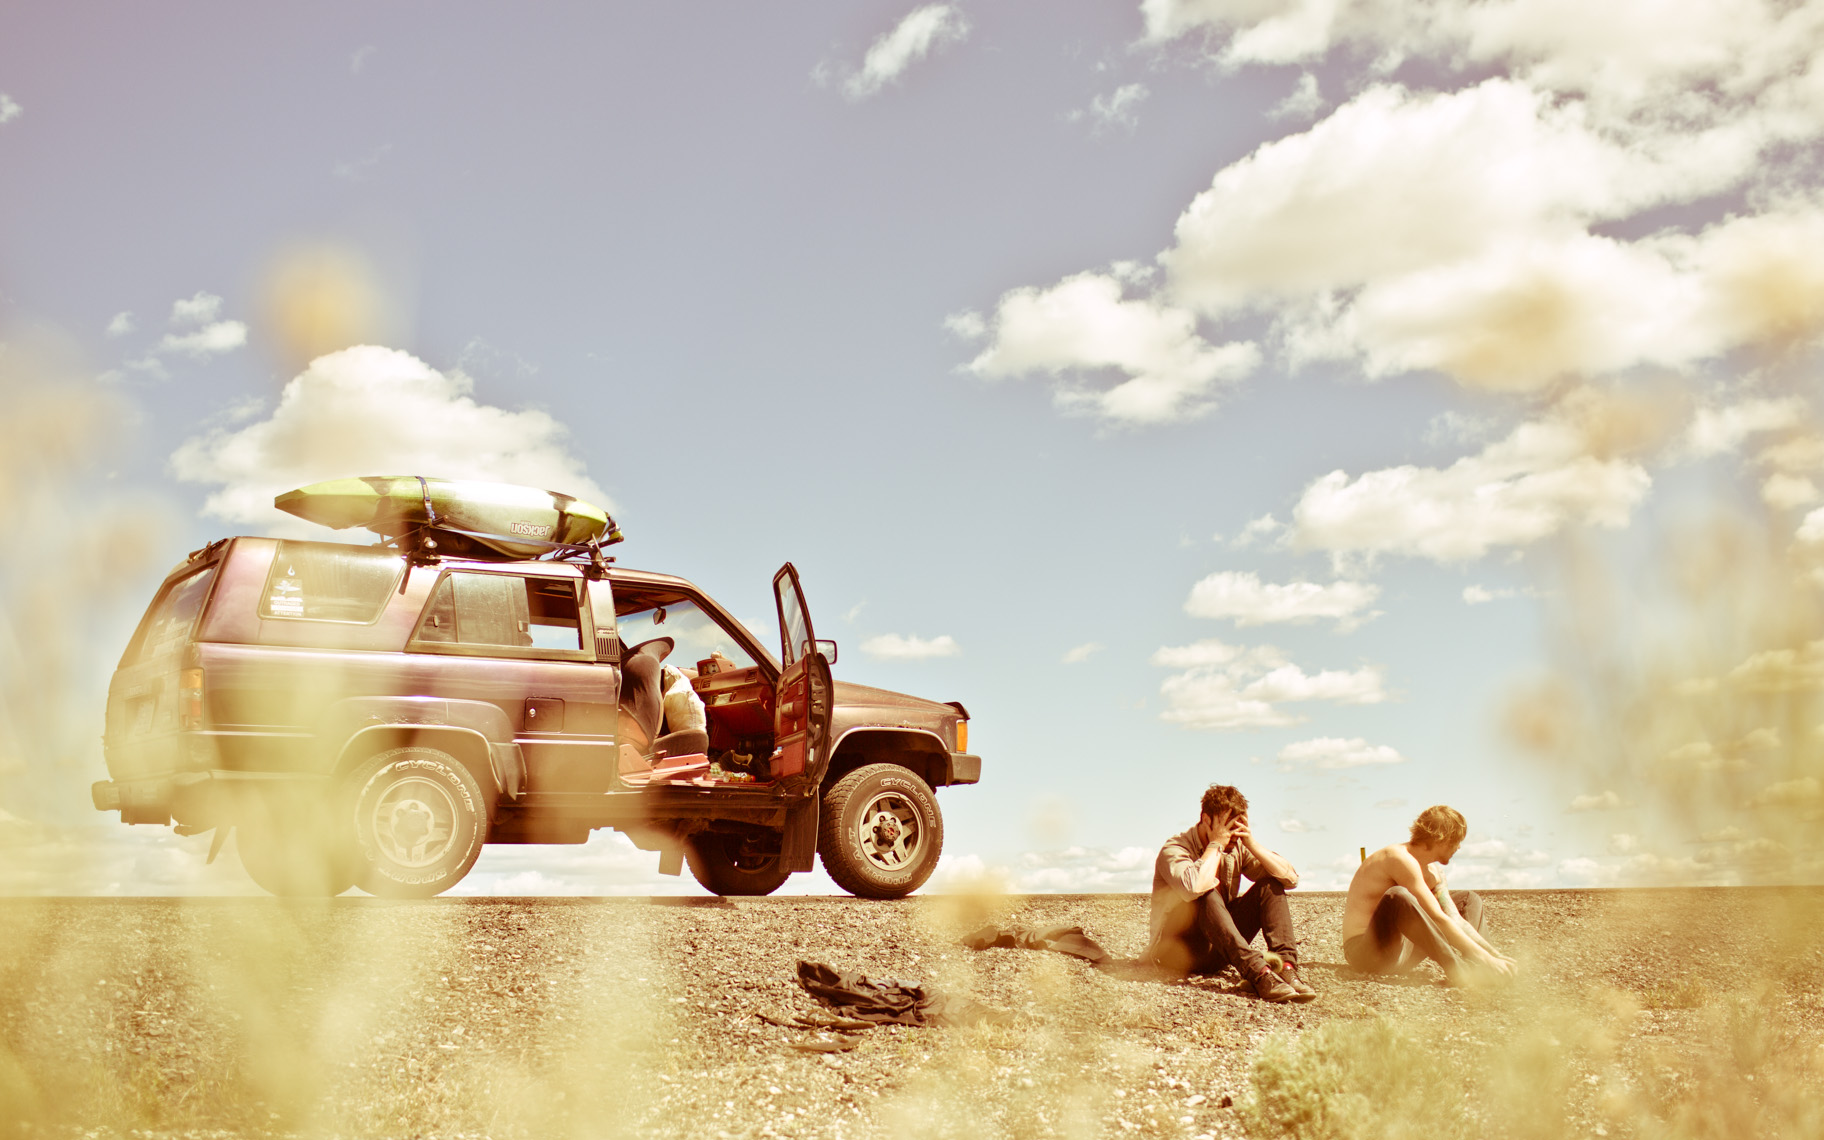 Lifestyle road trip photography by Forest Woodward